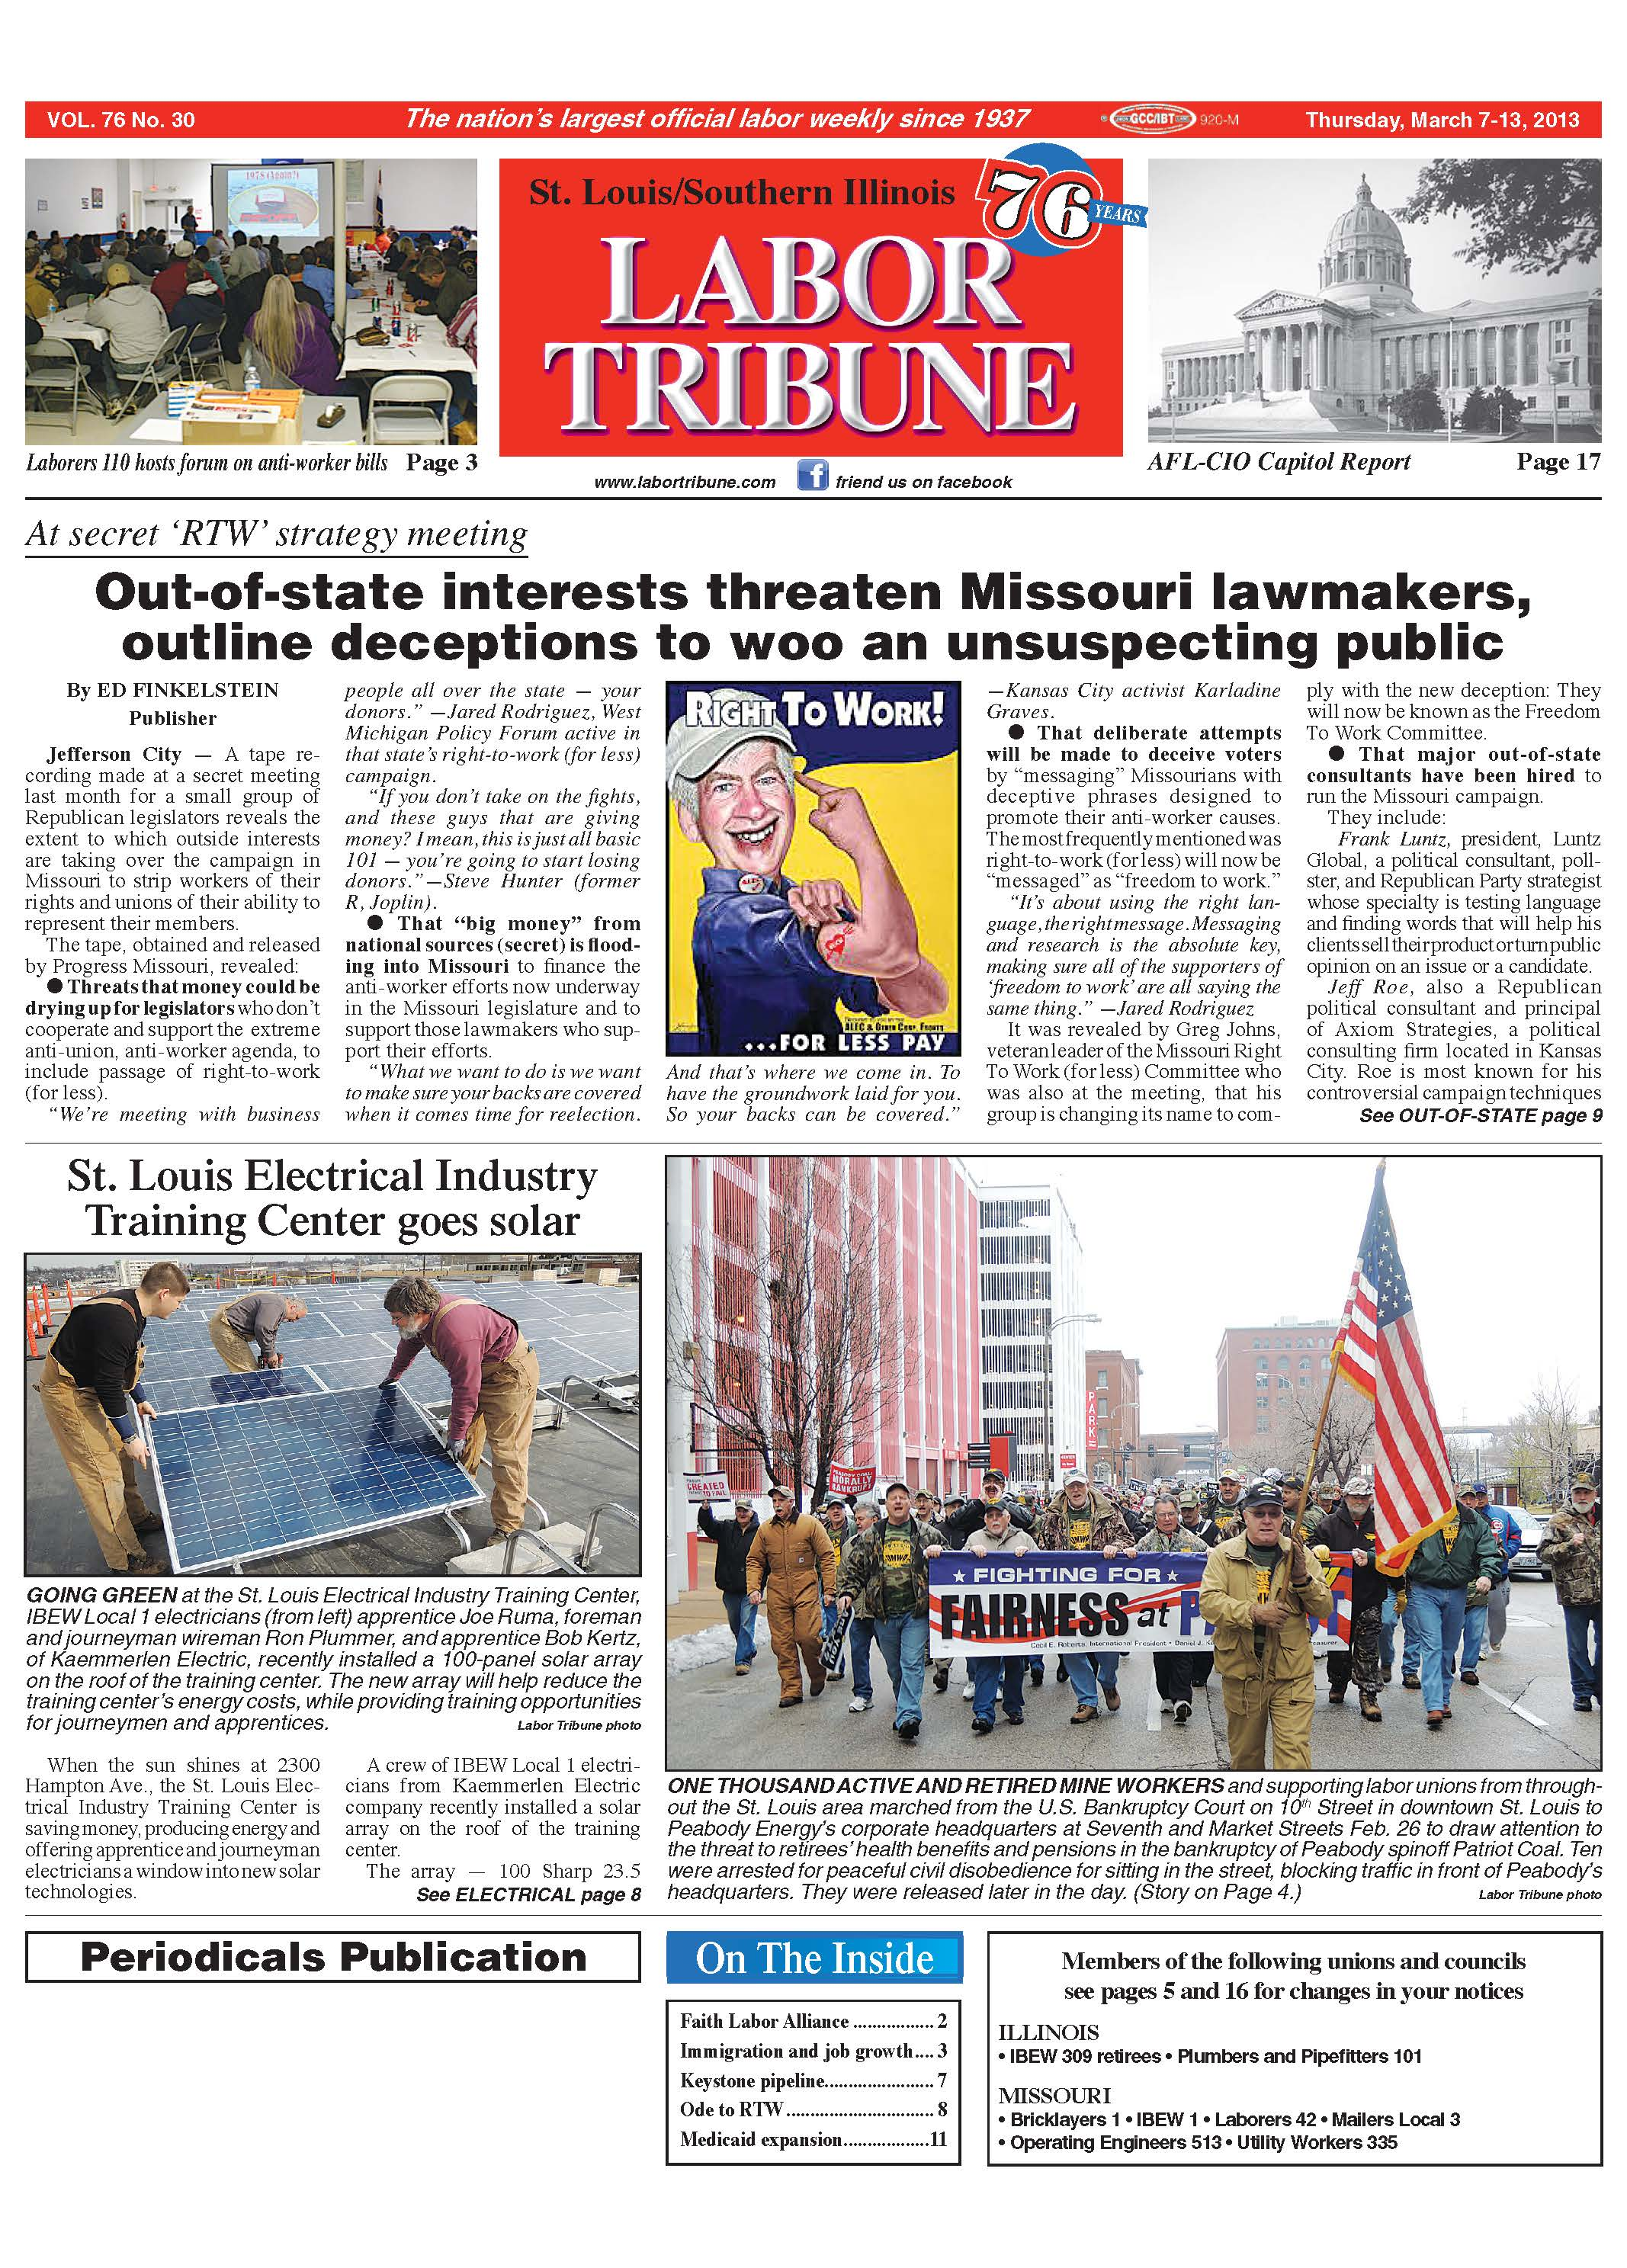 The Labor Tribune | Published Weekly Since 1937